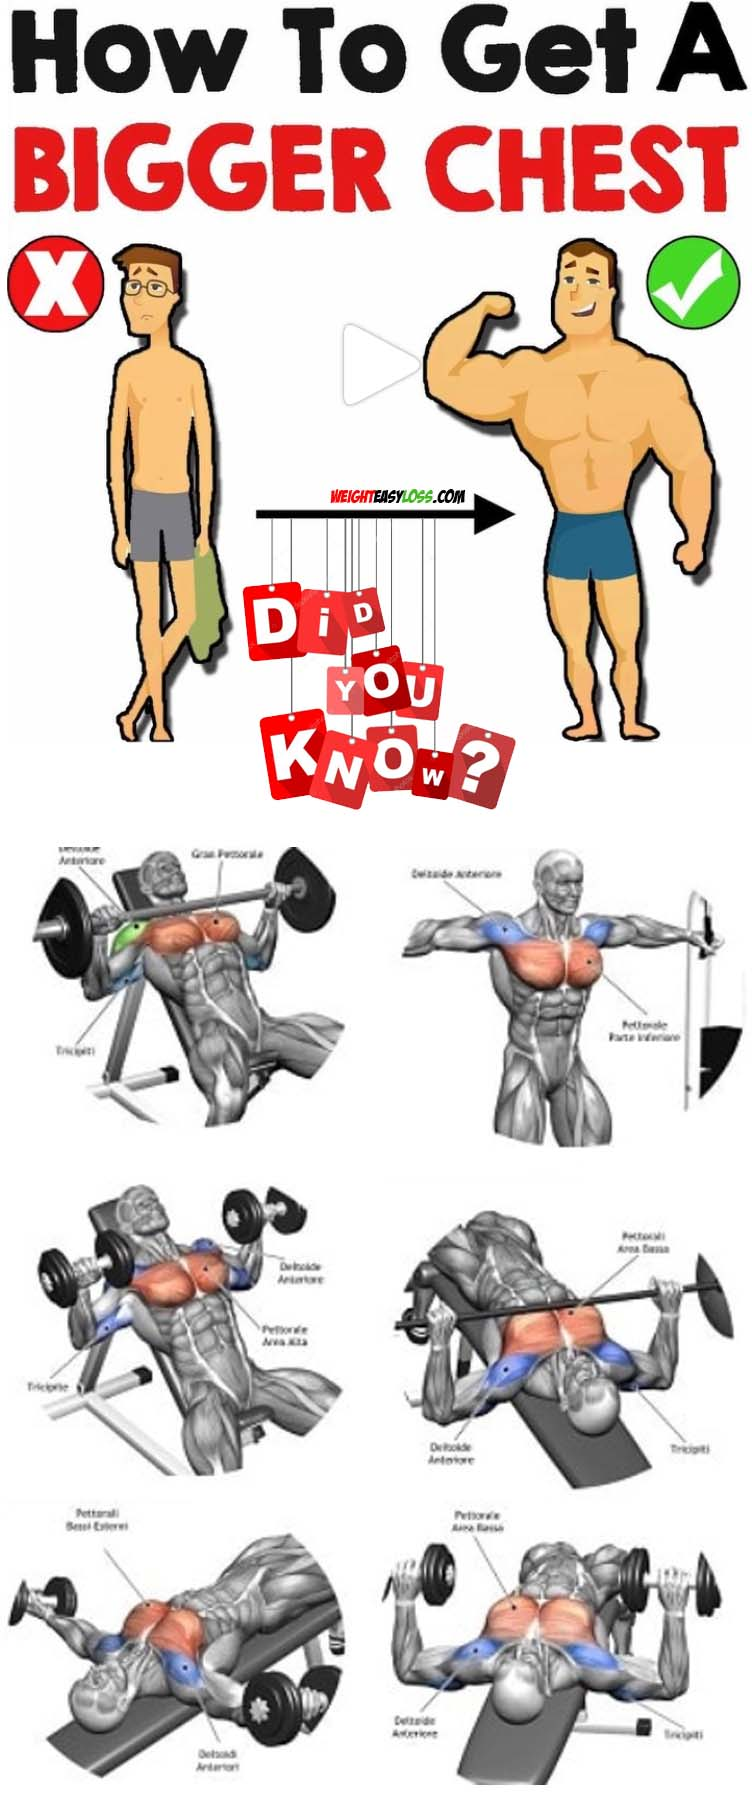 HOW TO BIGGER CHEST